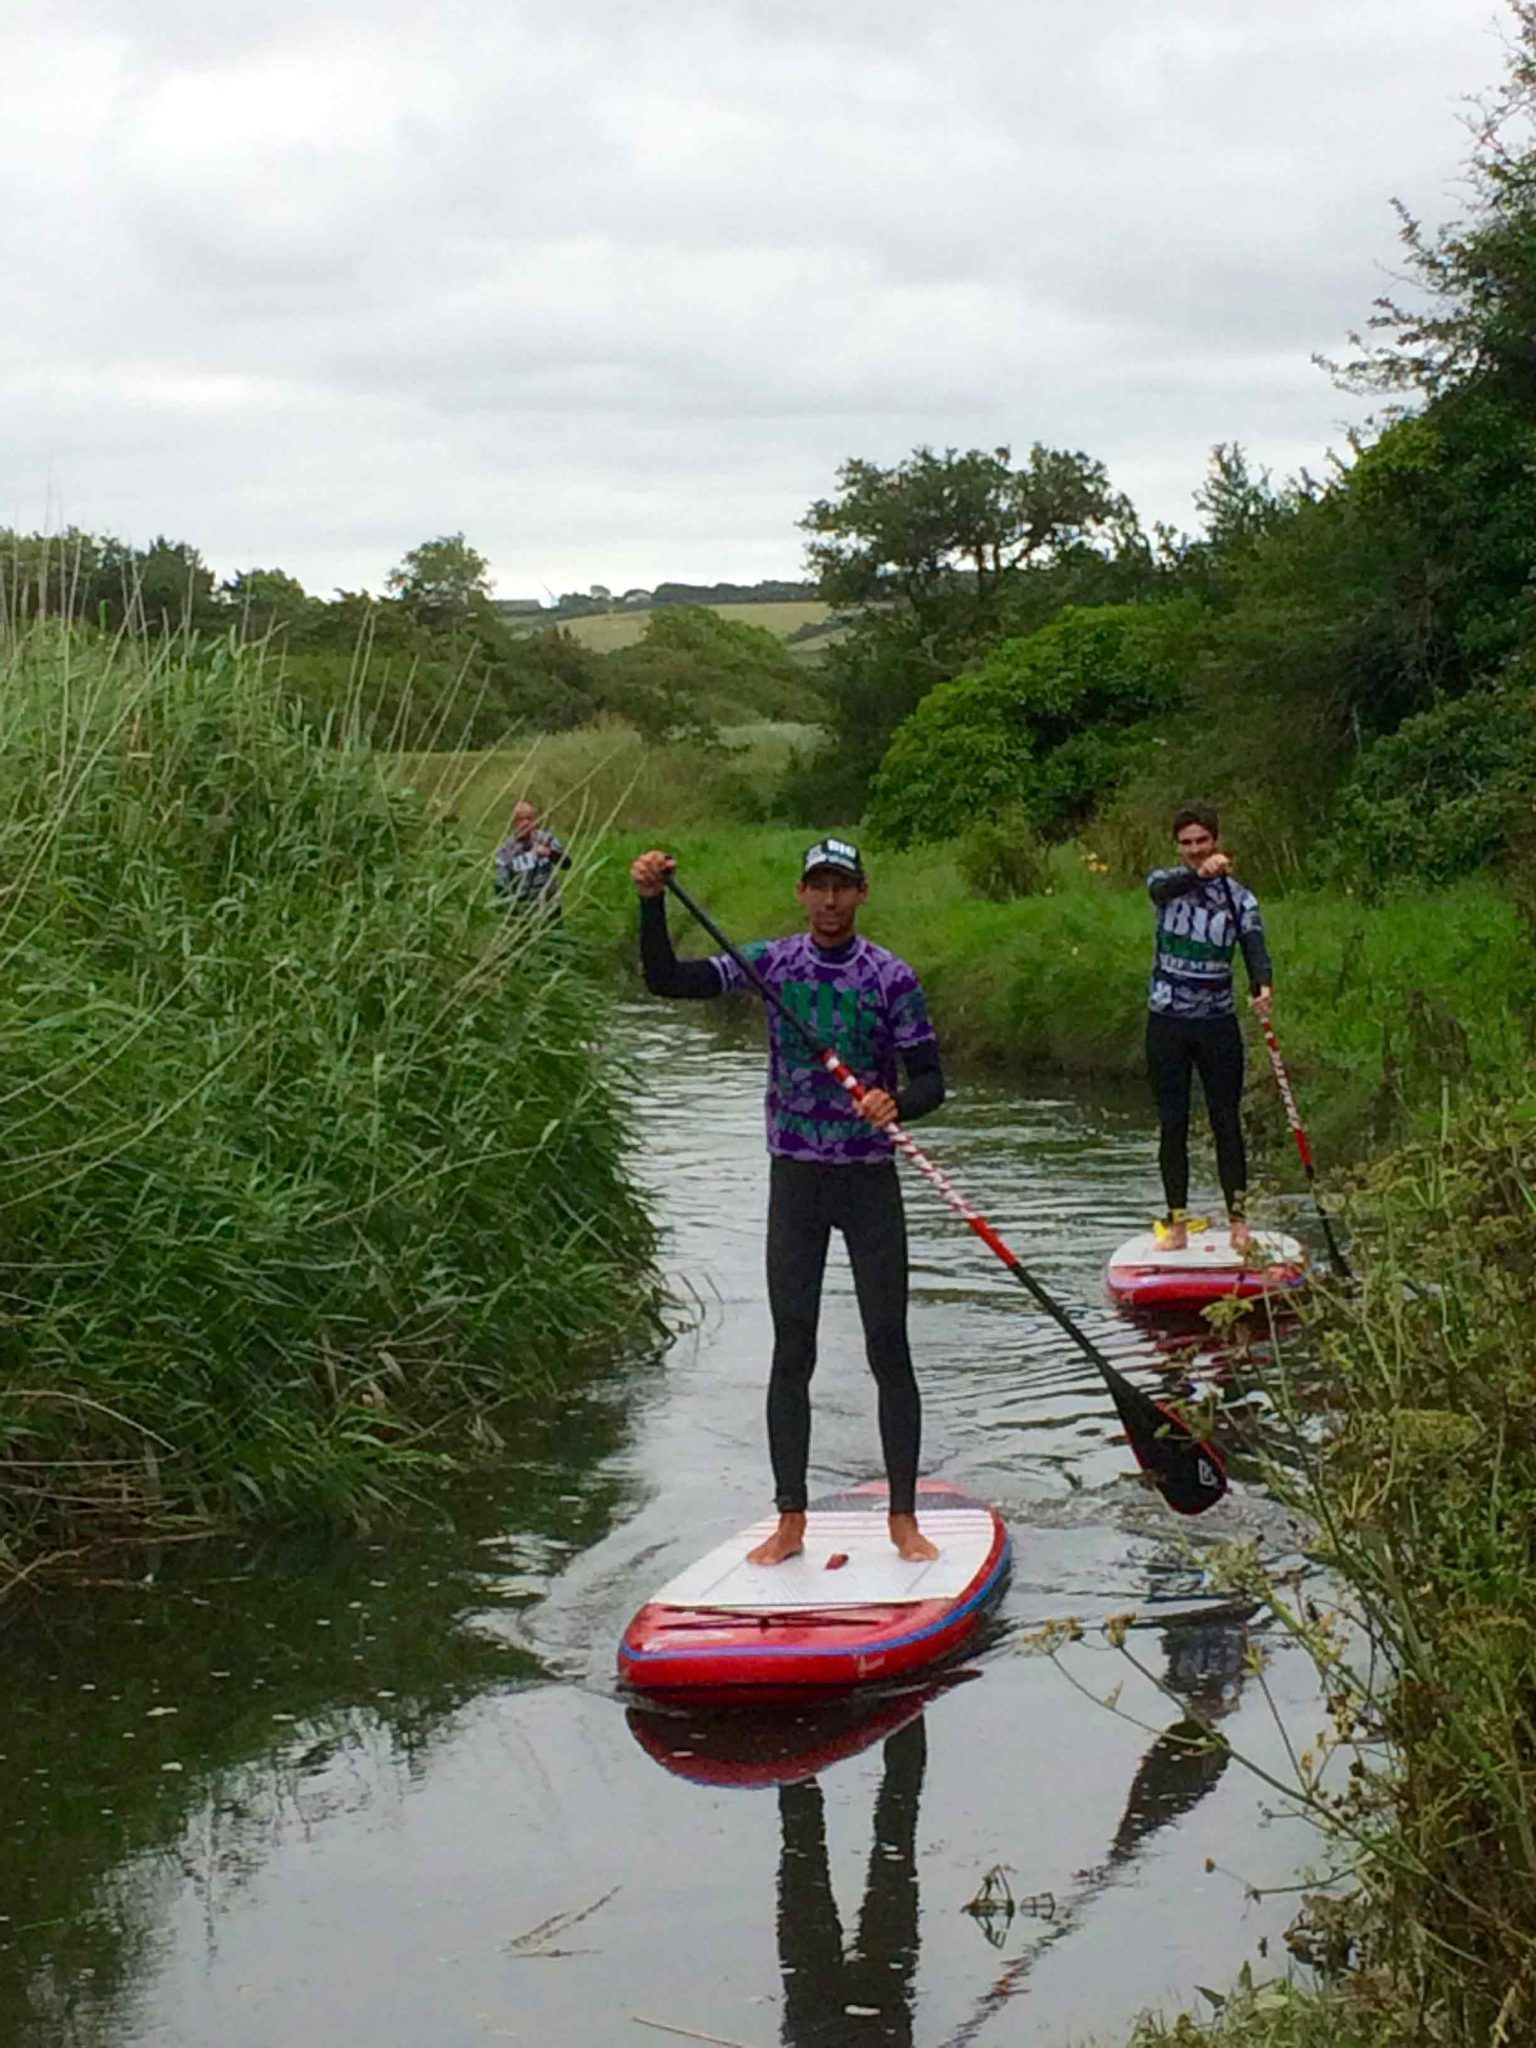 Newquay Beginner SUP Lesson (Tour) in Crantock